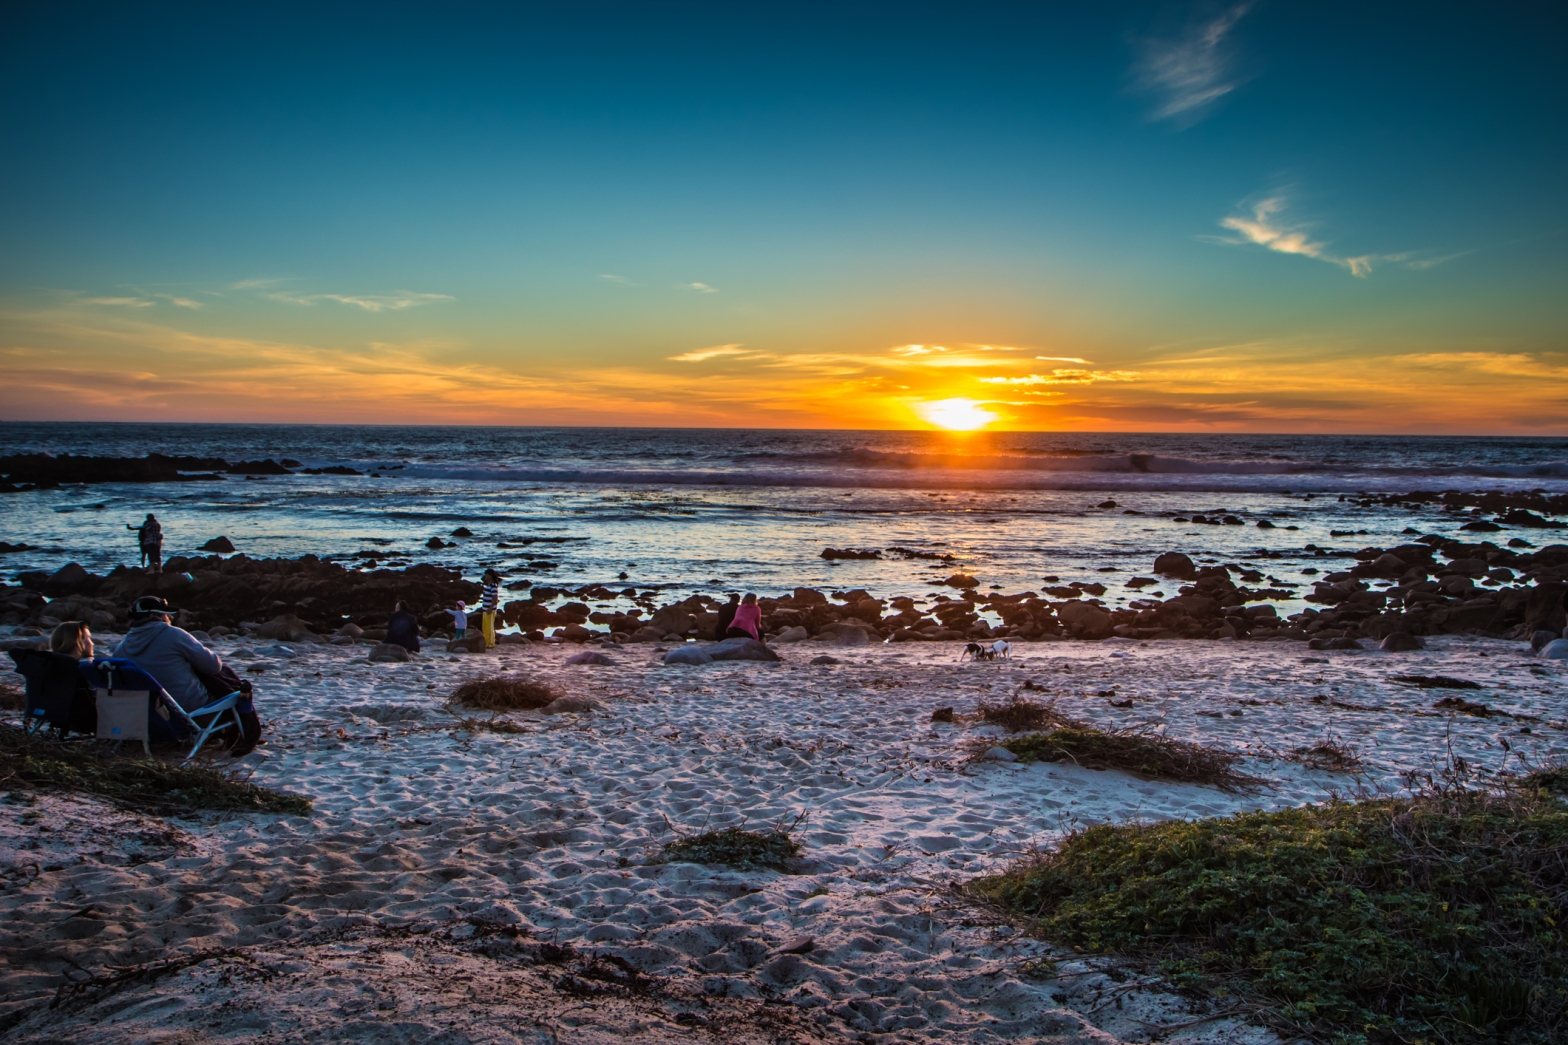 Sunset at Pacific Grove, California Not So SAHM